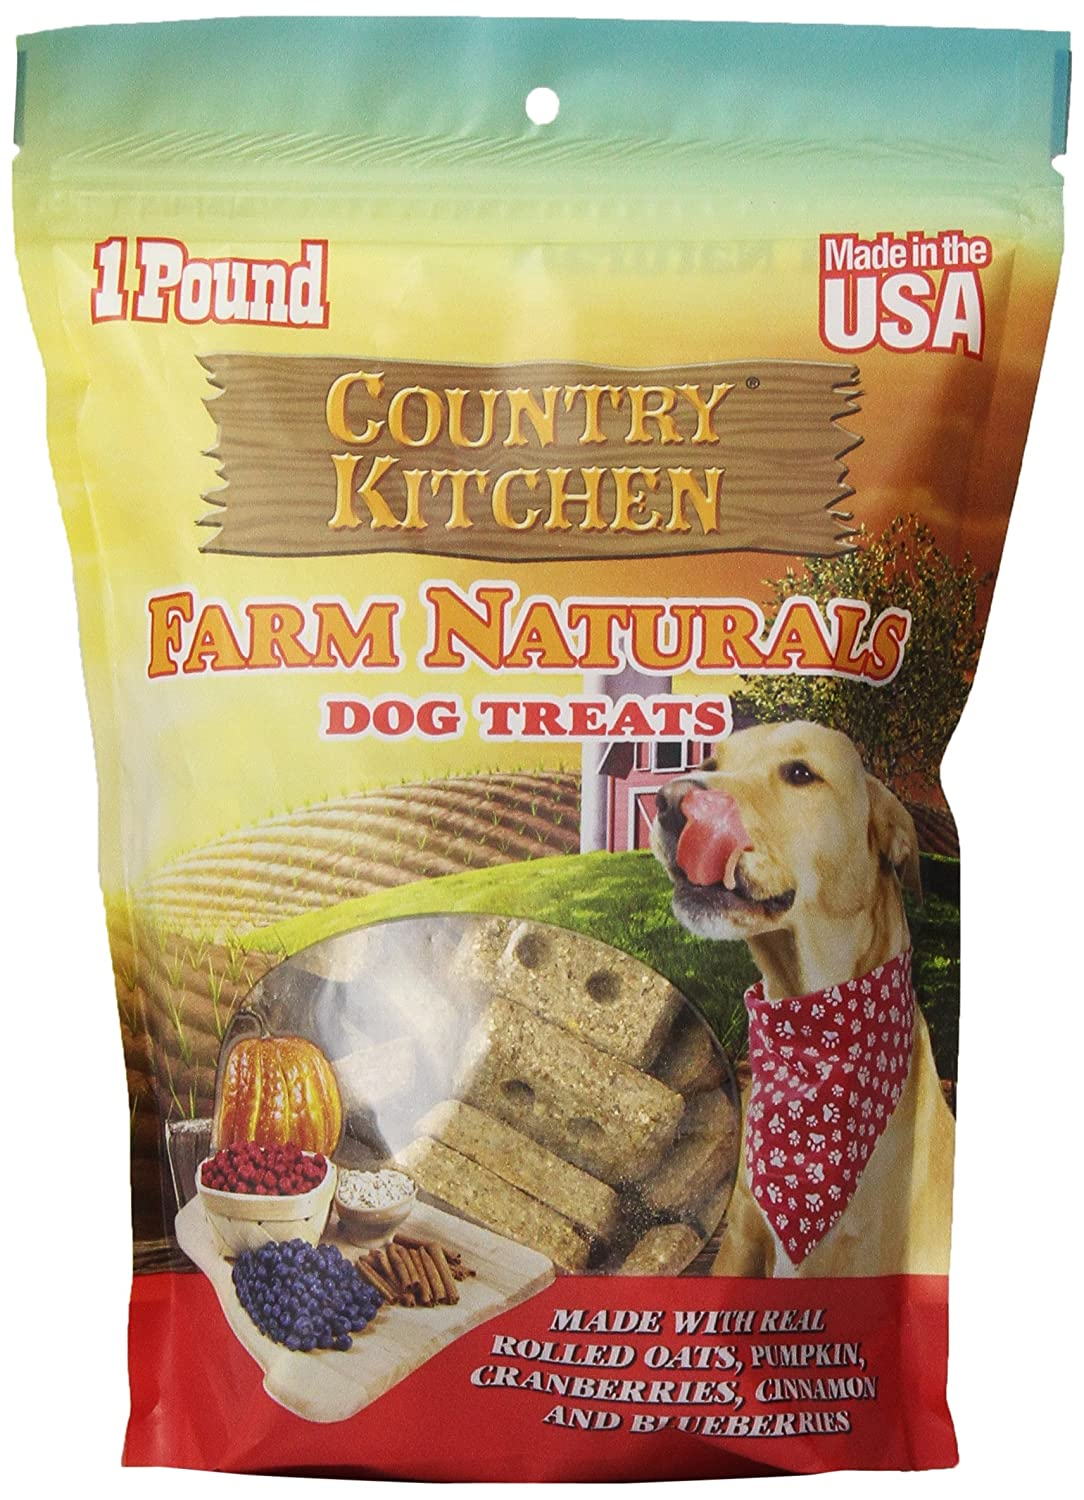 Country Kitchen Dog Treats Amazoncom Country Kitchen Farm Naturals With Pumpkin Dog Treats